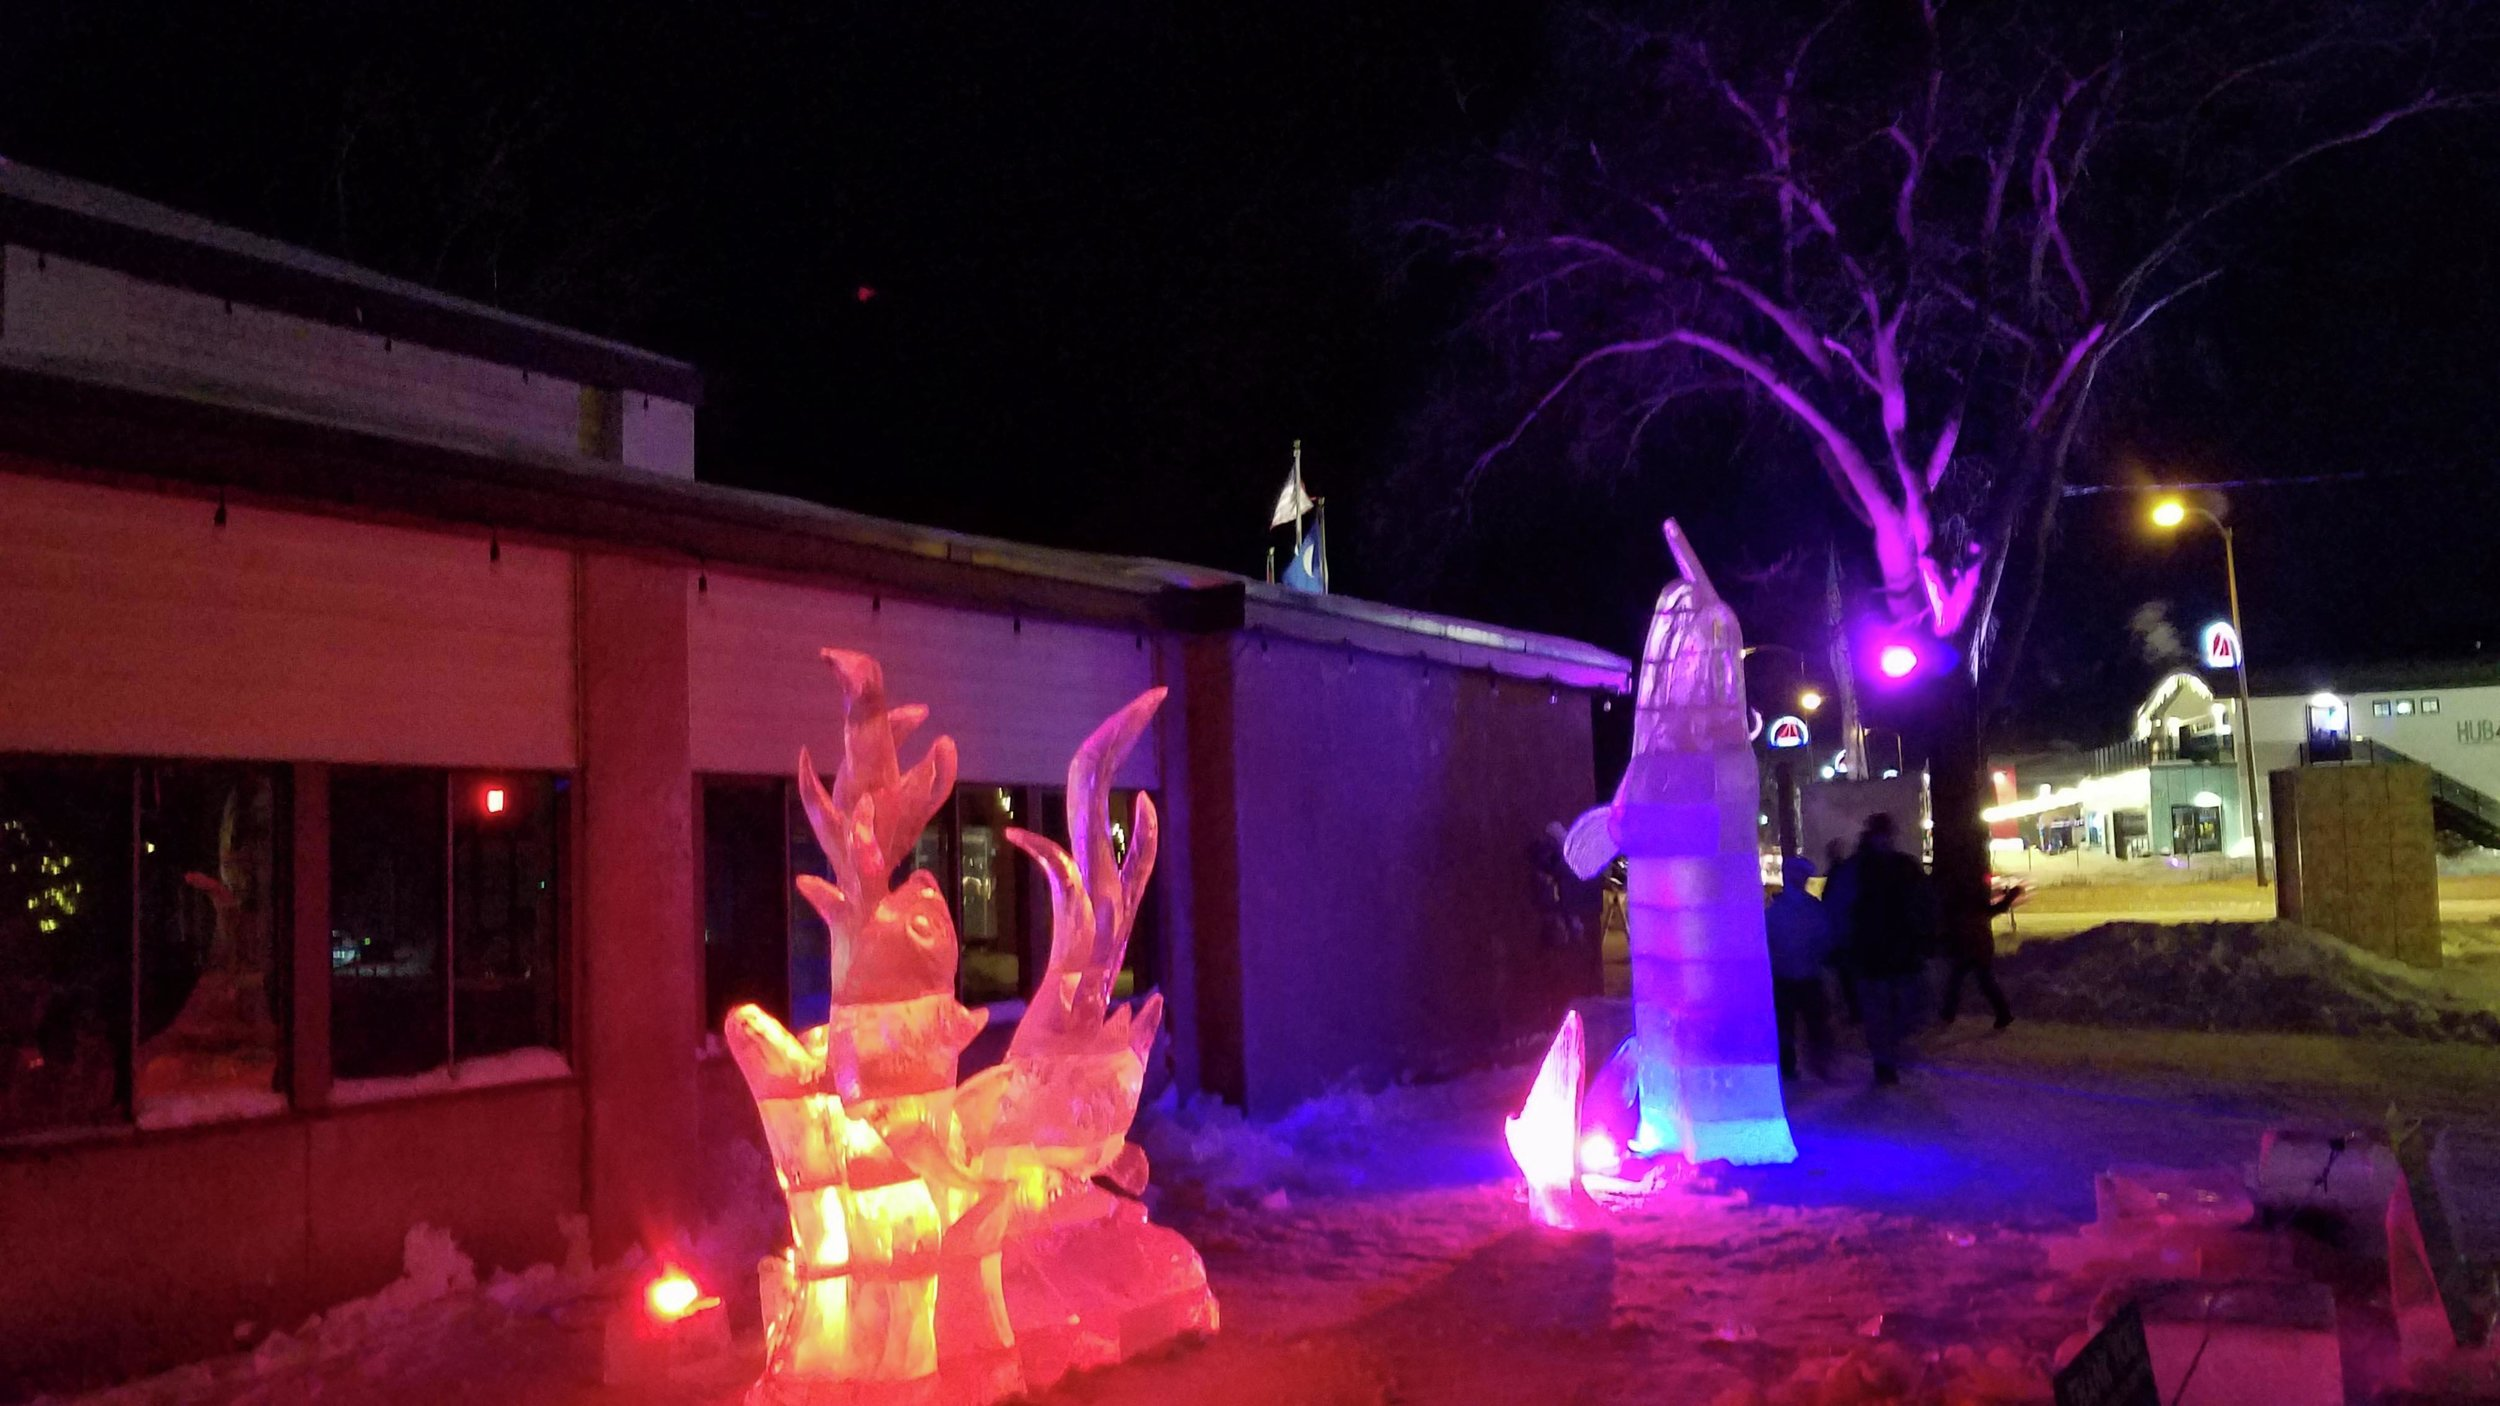 The sculptures from this year's competition made an impressive sight on Saturday evening, with the LED lights illuminating them. (Vicki Gerdes / Tribune)